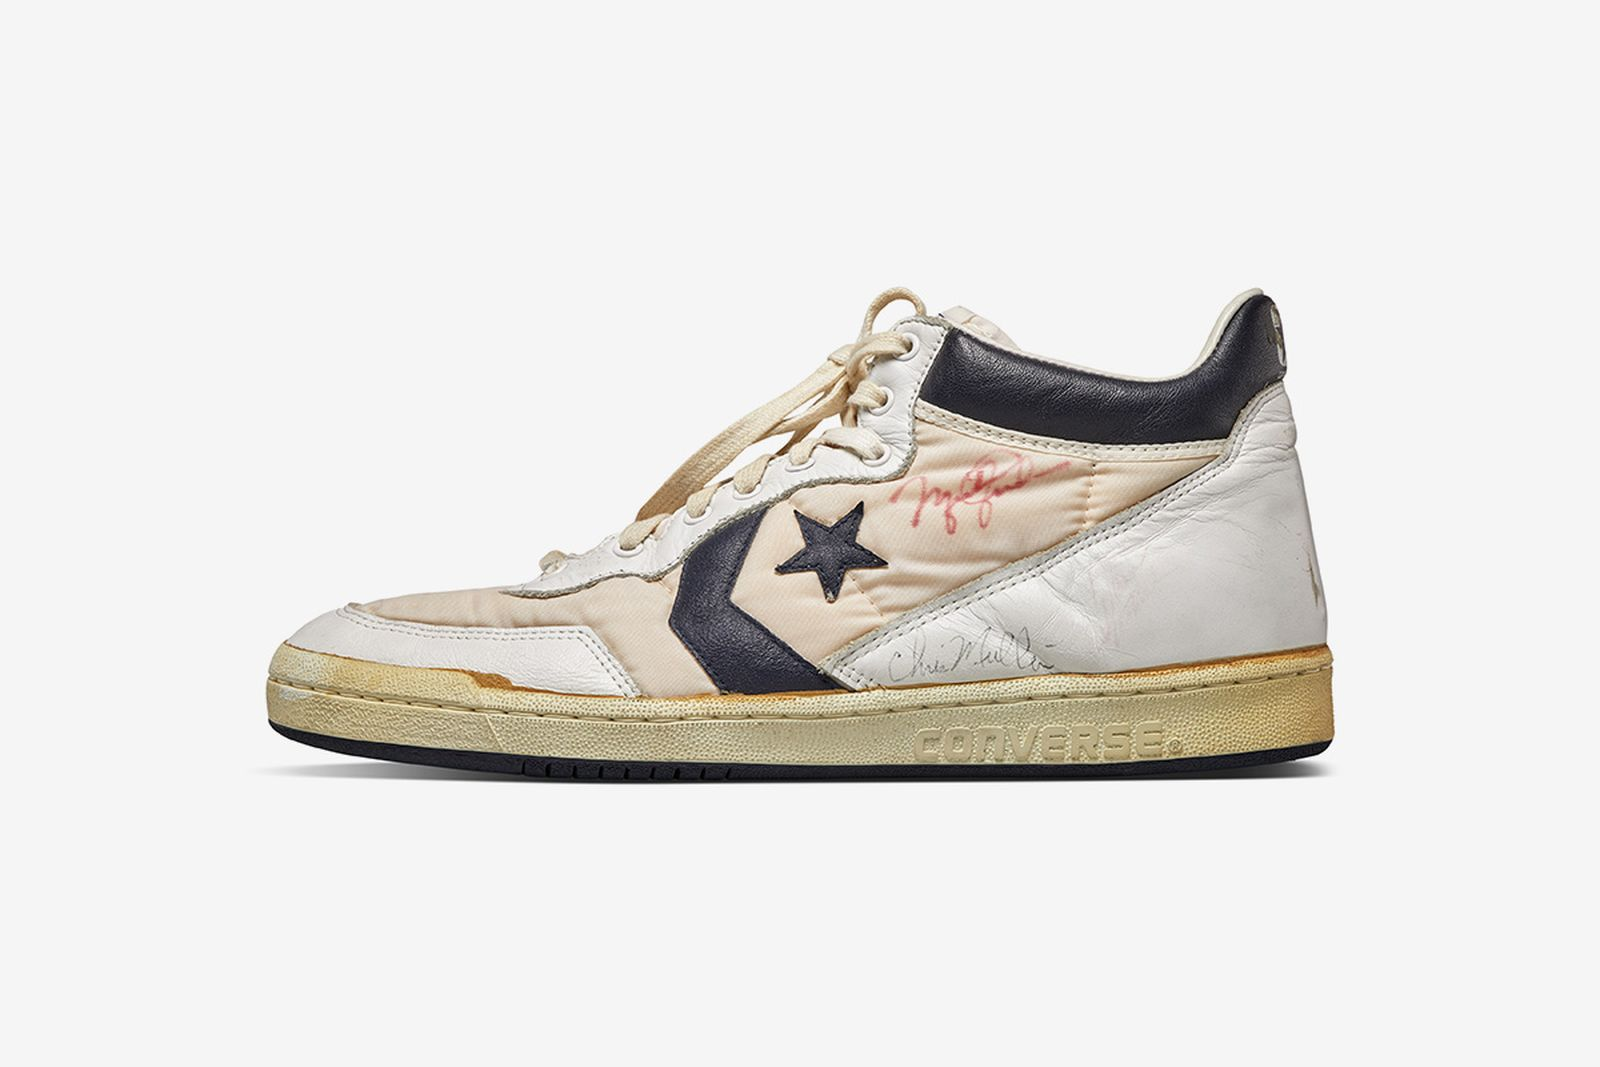 bill-bowerman-track-spikes-sothebys-olympic-auction-04